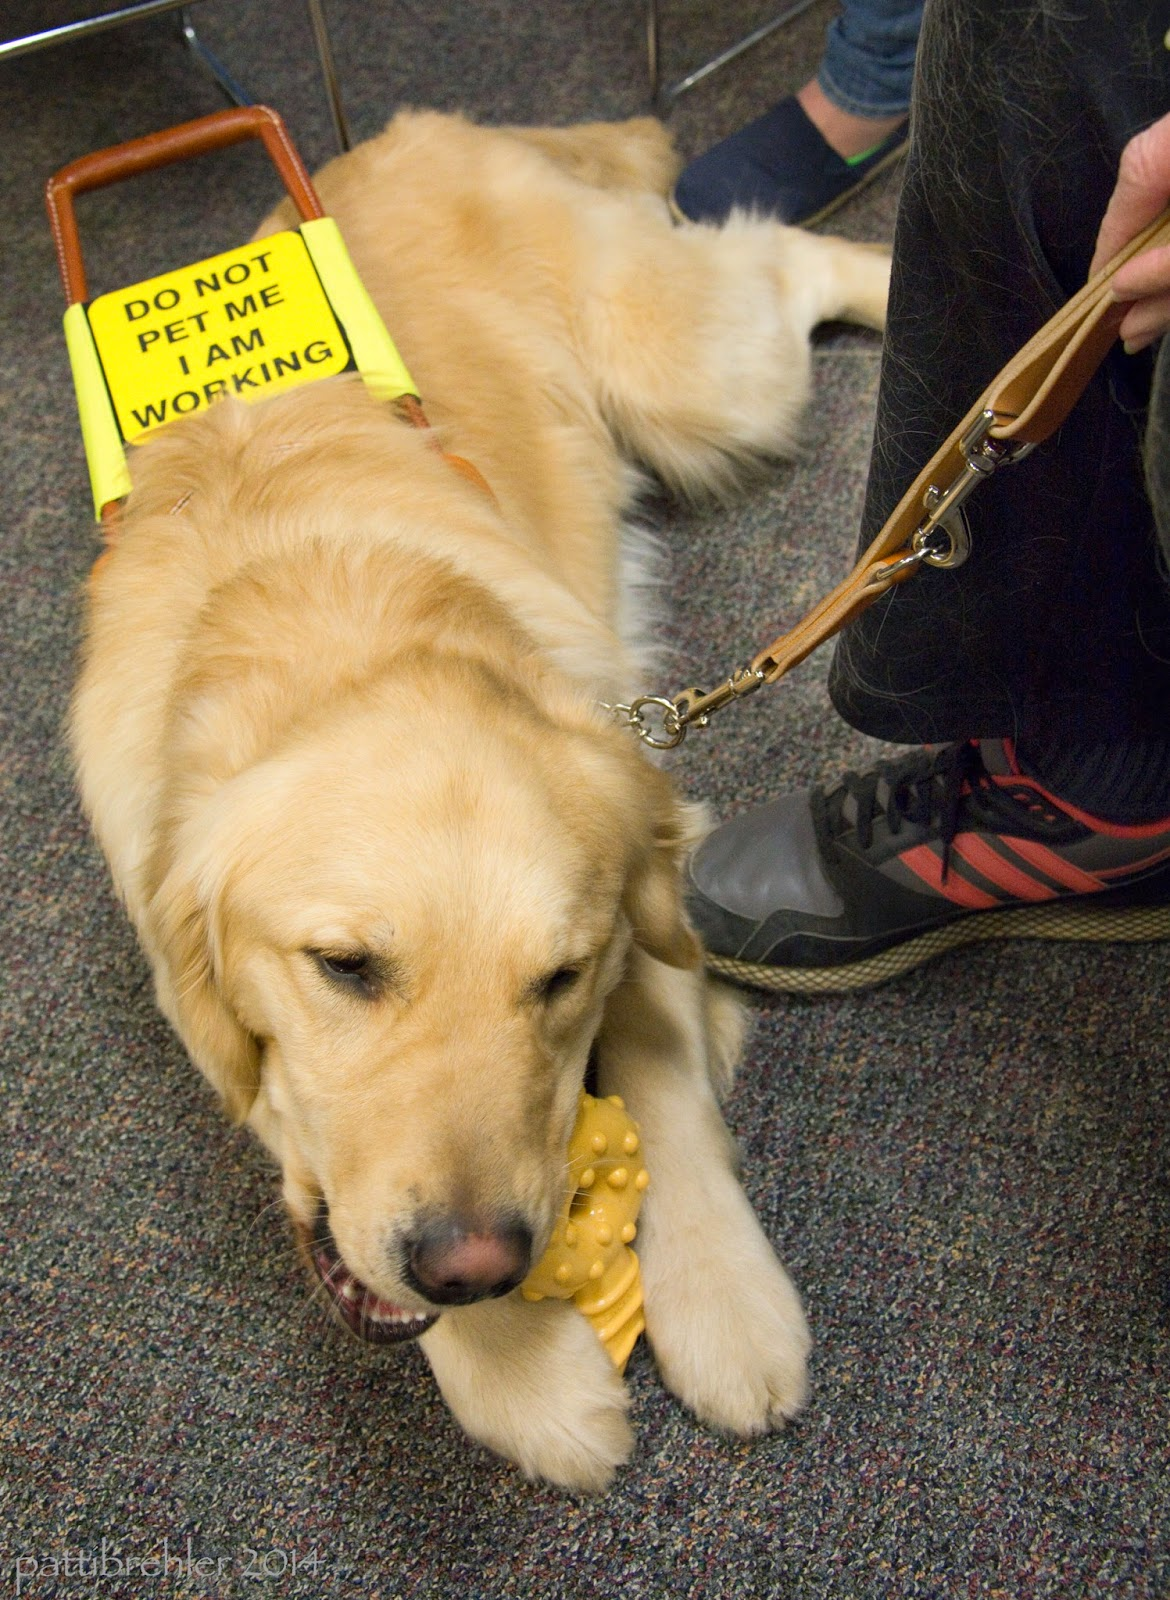 "A close shot of the golden retriever lying on the carpeted floor. His head is toward the camera and he is busy chewing a Nylabone, which he is holding between his front paws. His leash is held by the woman's hand, she is out of view except for her right leg and foot just touching the dog's side. You can read the yellow sign on the handle of the harness. It says ""Do not pet me I am working."""